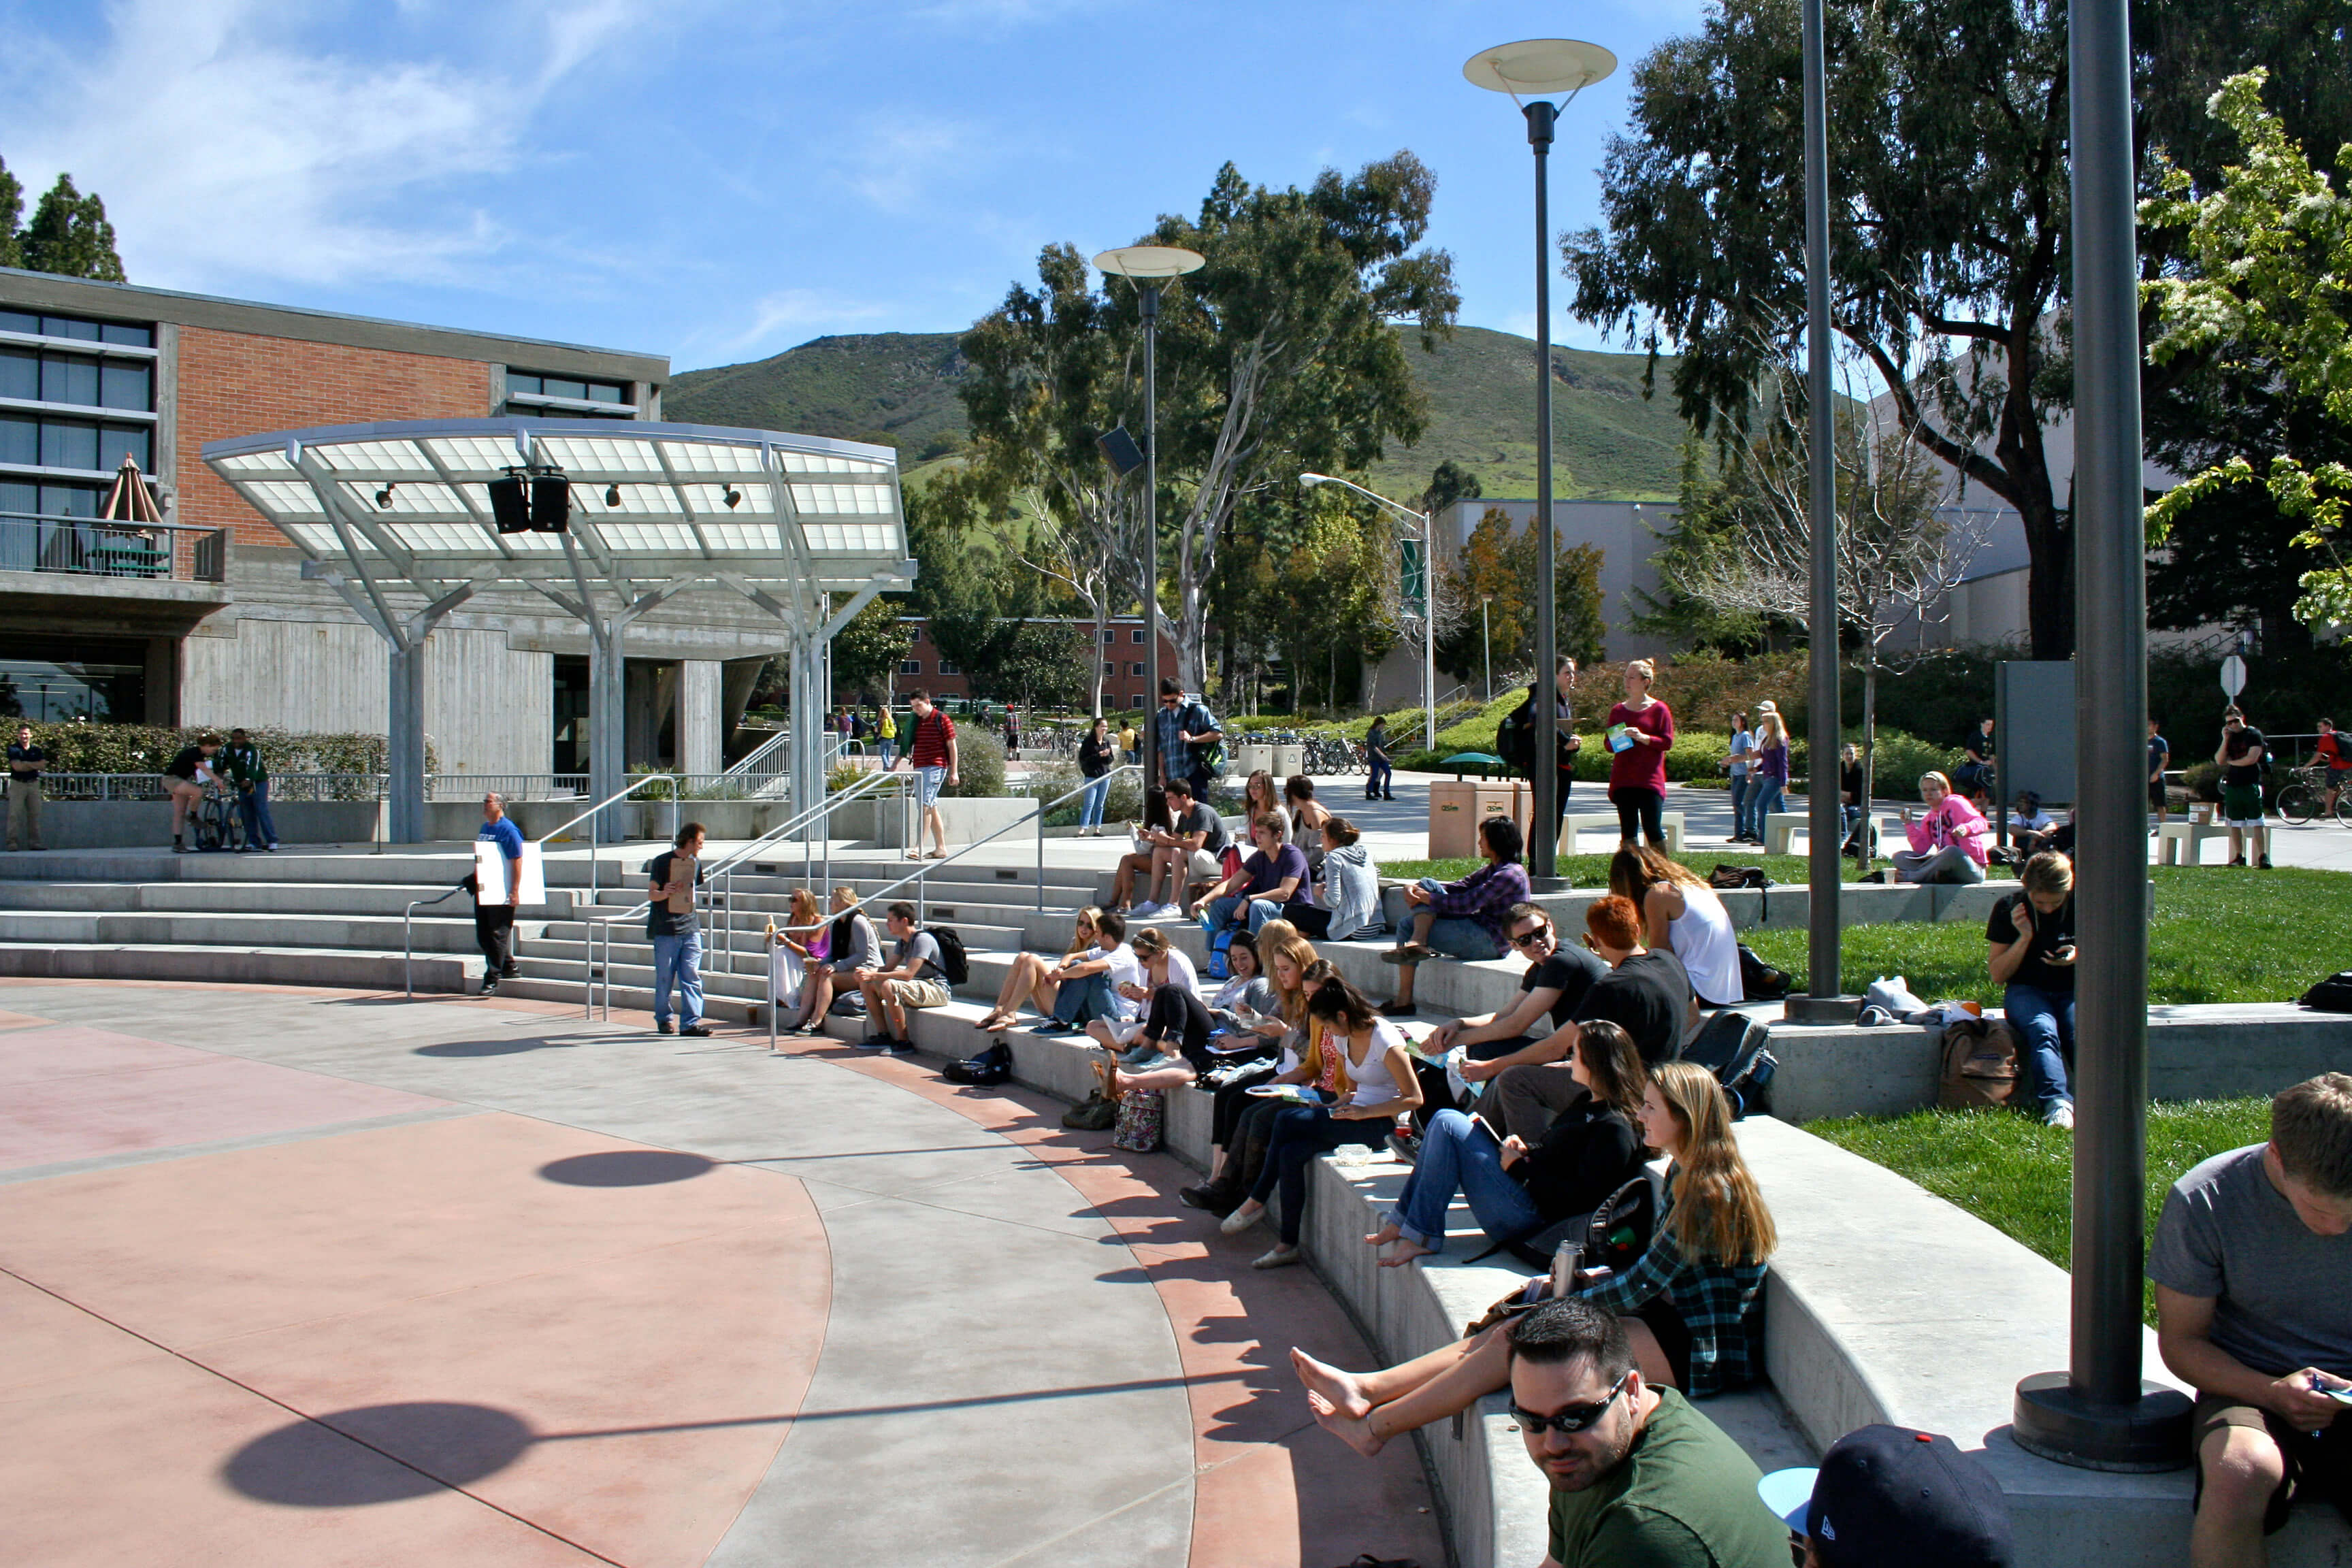 Students in the University Union Plaza